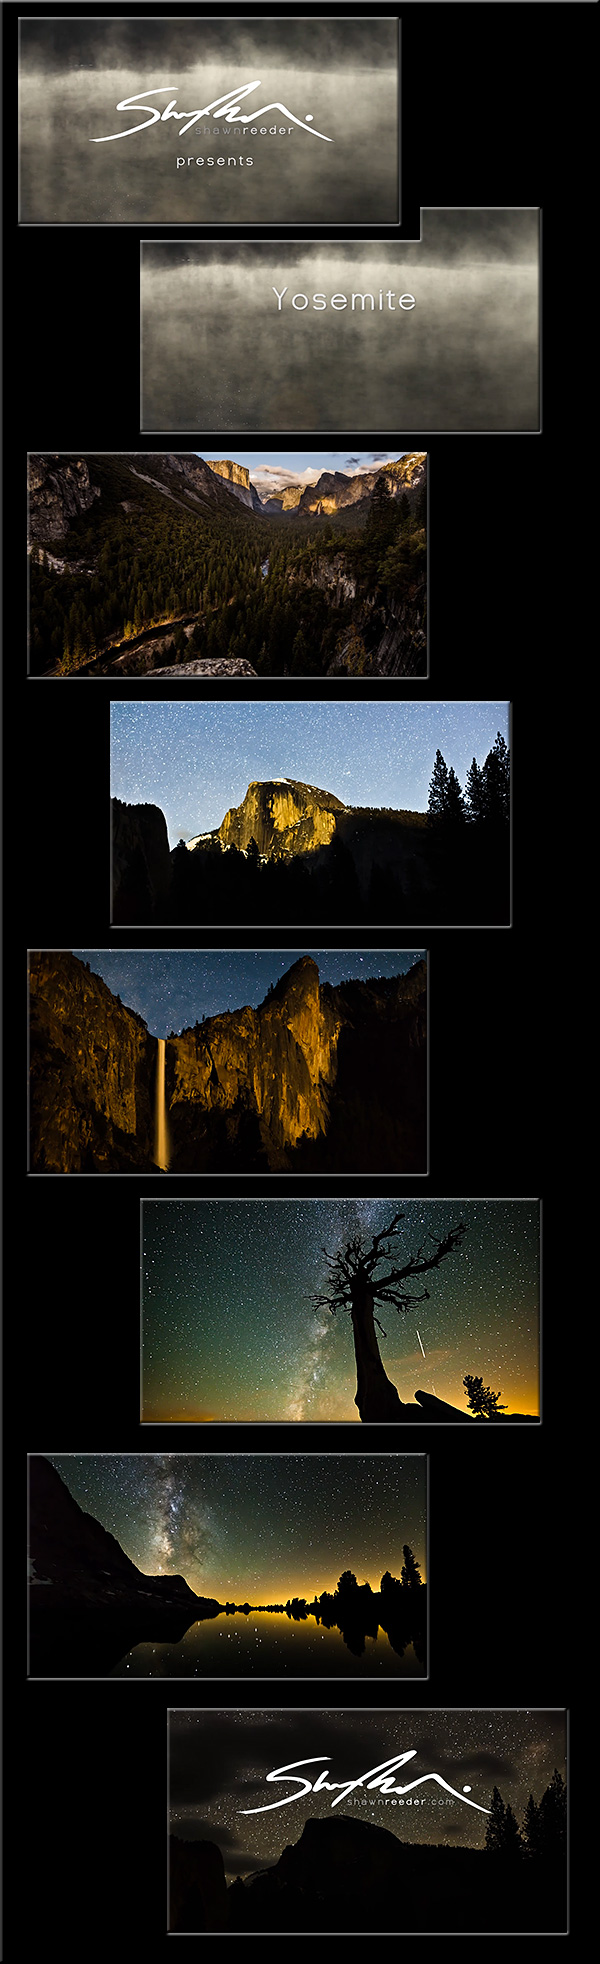 Yosemite Range of Light -- by Shawn Reeder